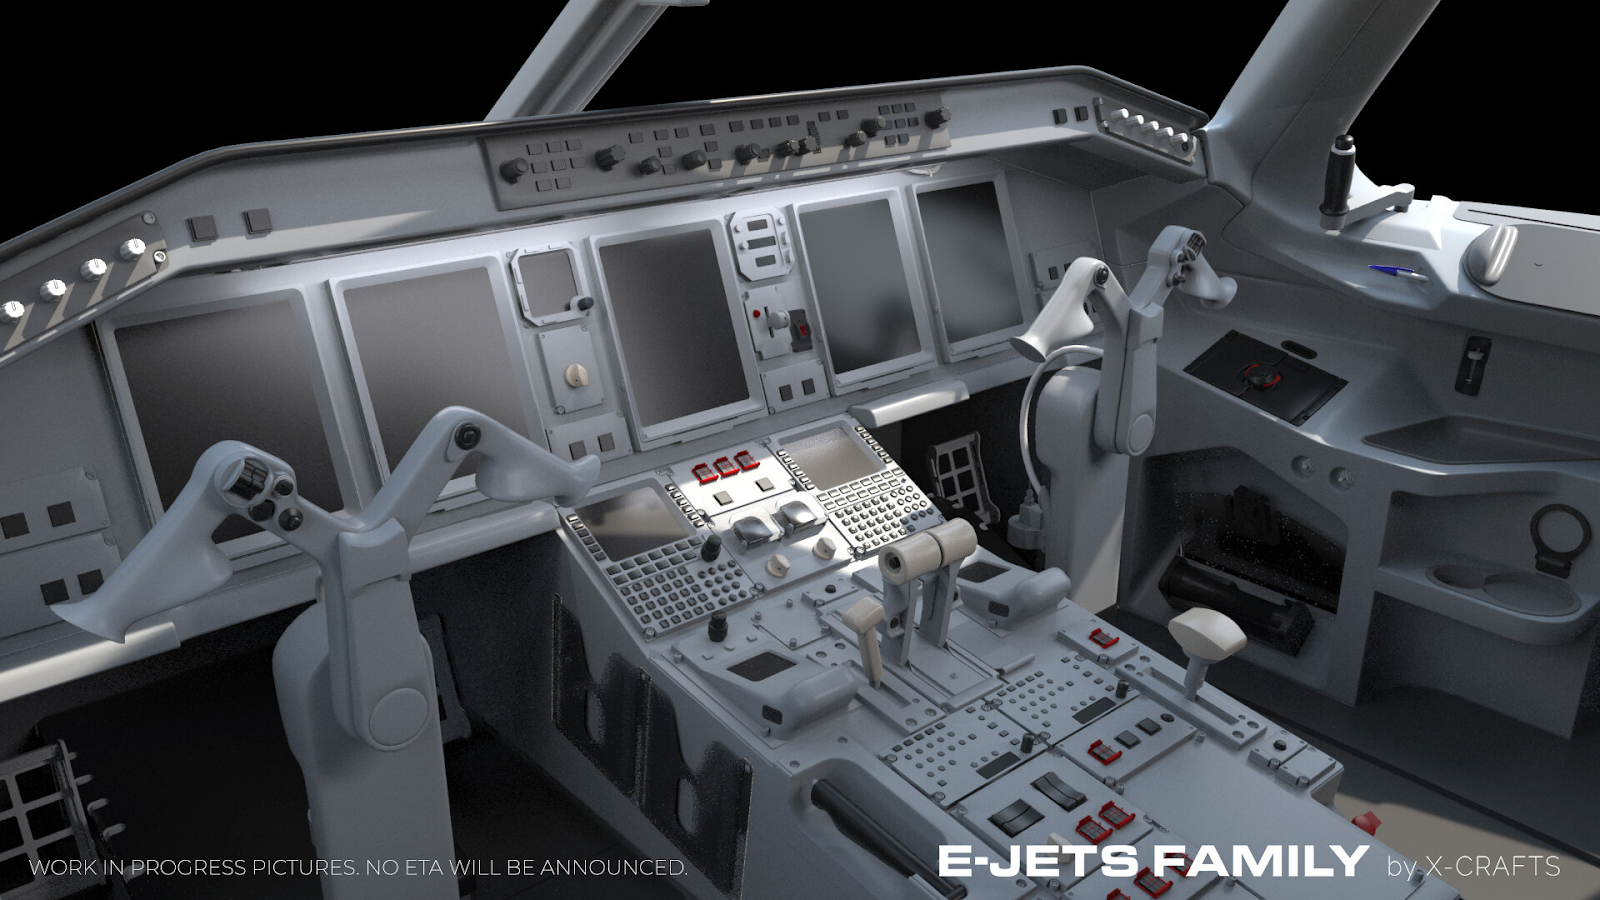 X-Crafts – E-jets Development News